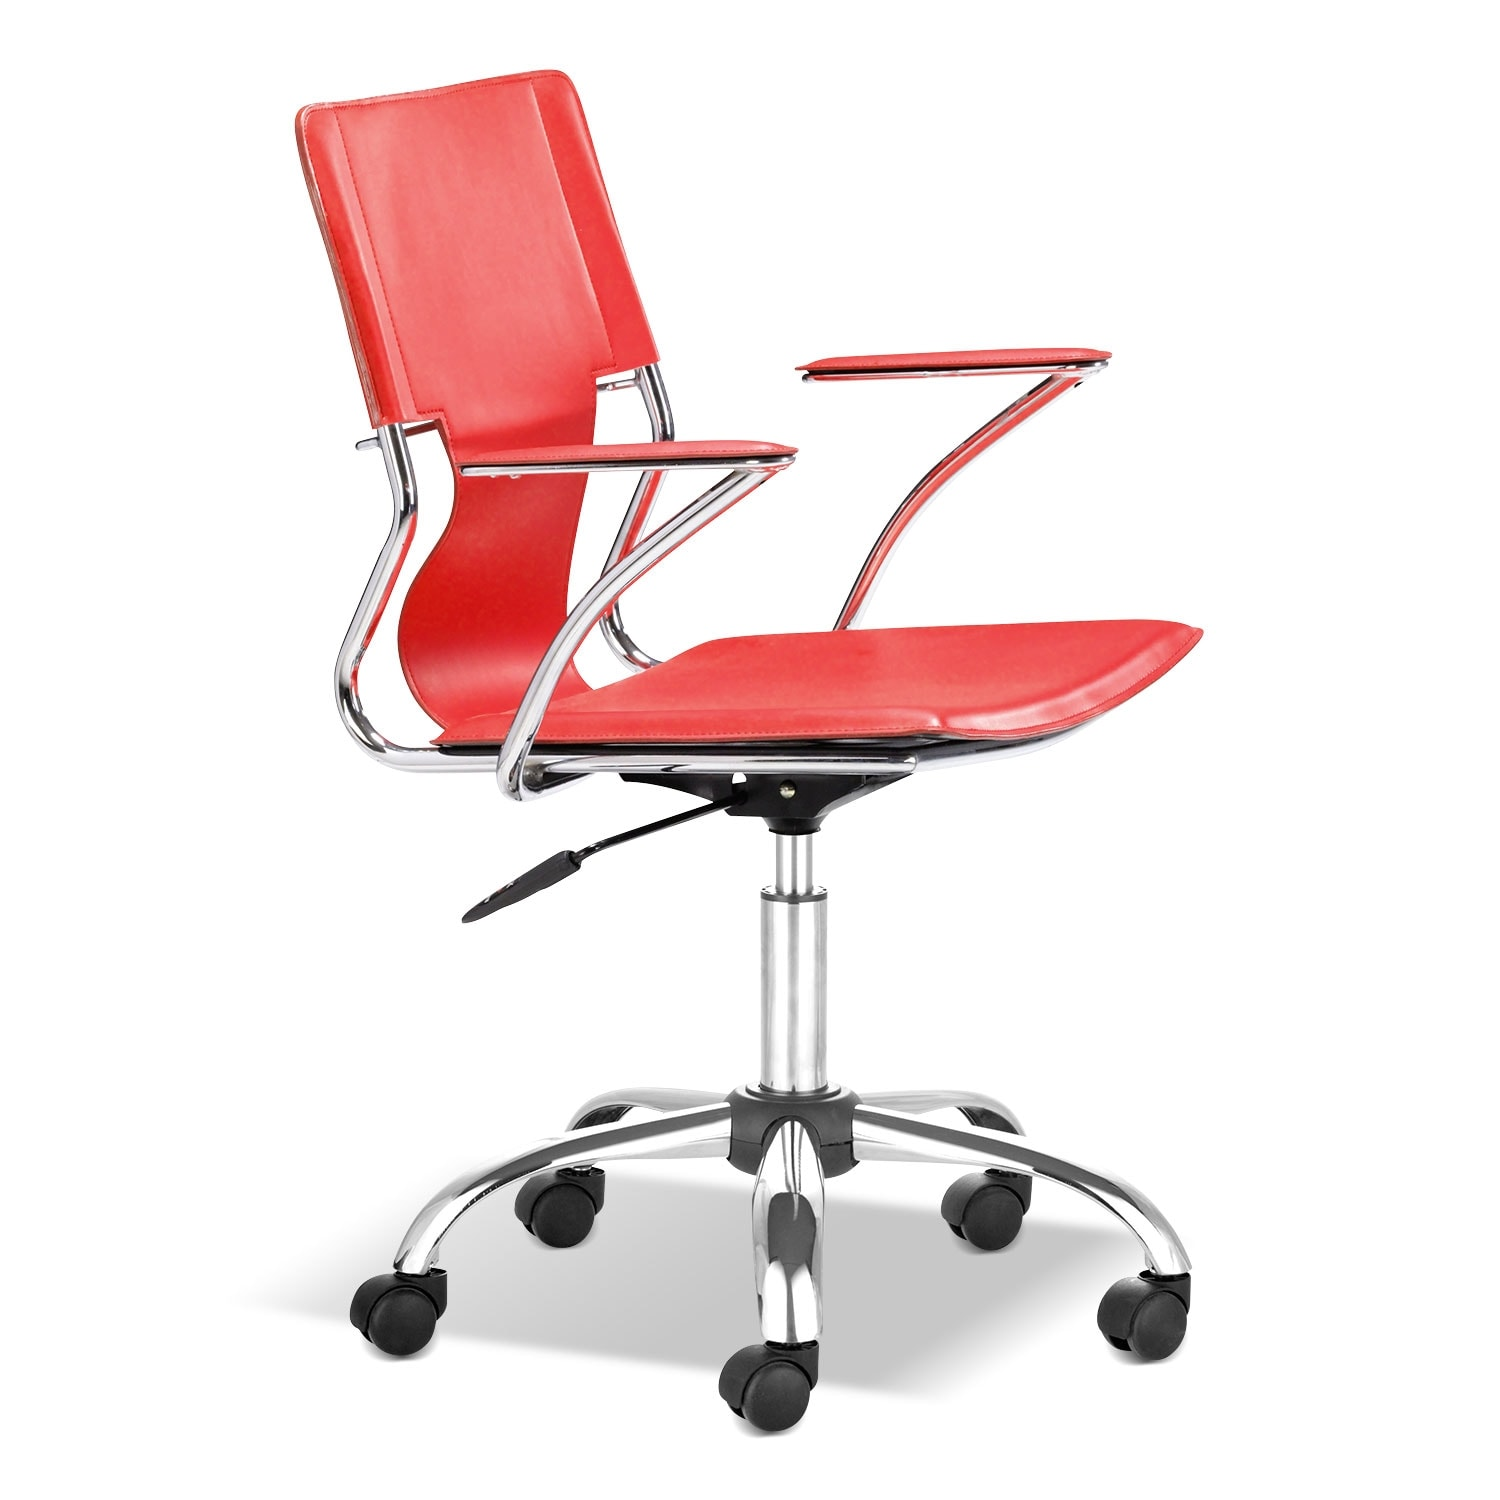 Home Office Furniture - Crowley Office Arm Chair - Red